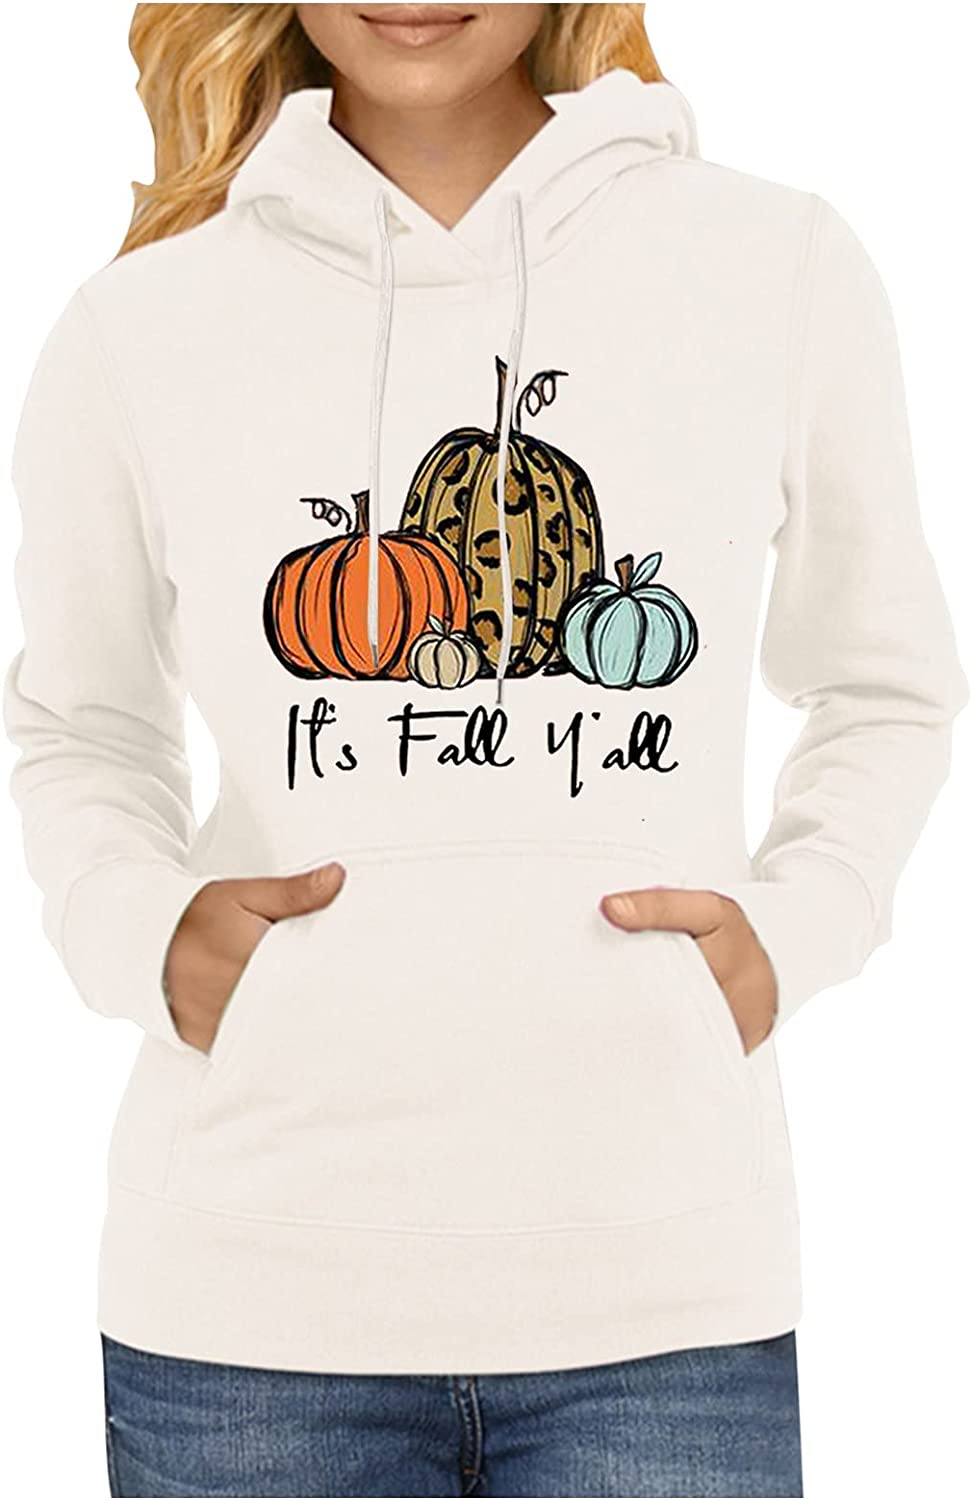 Its Fall Yall T Shirt Women Funny Pumpkin Graphic Halloween Hoodies Long Sleeve Pullover Thanksgiving Tops with Pockets